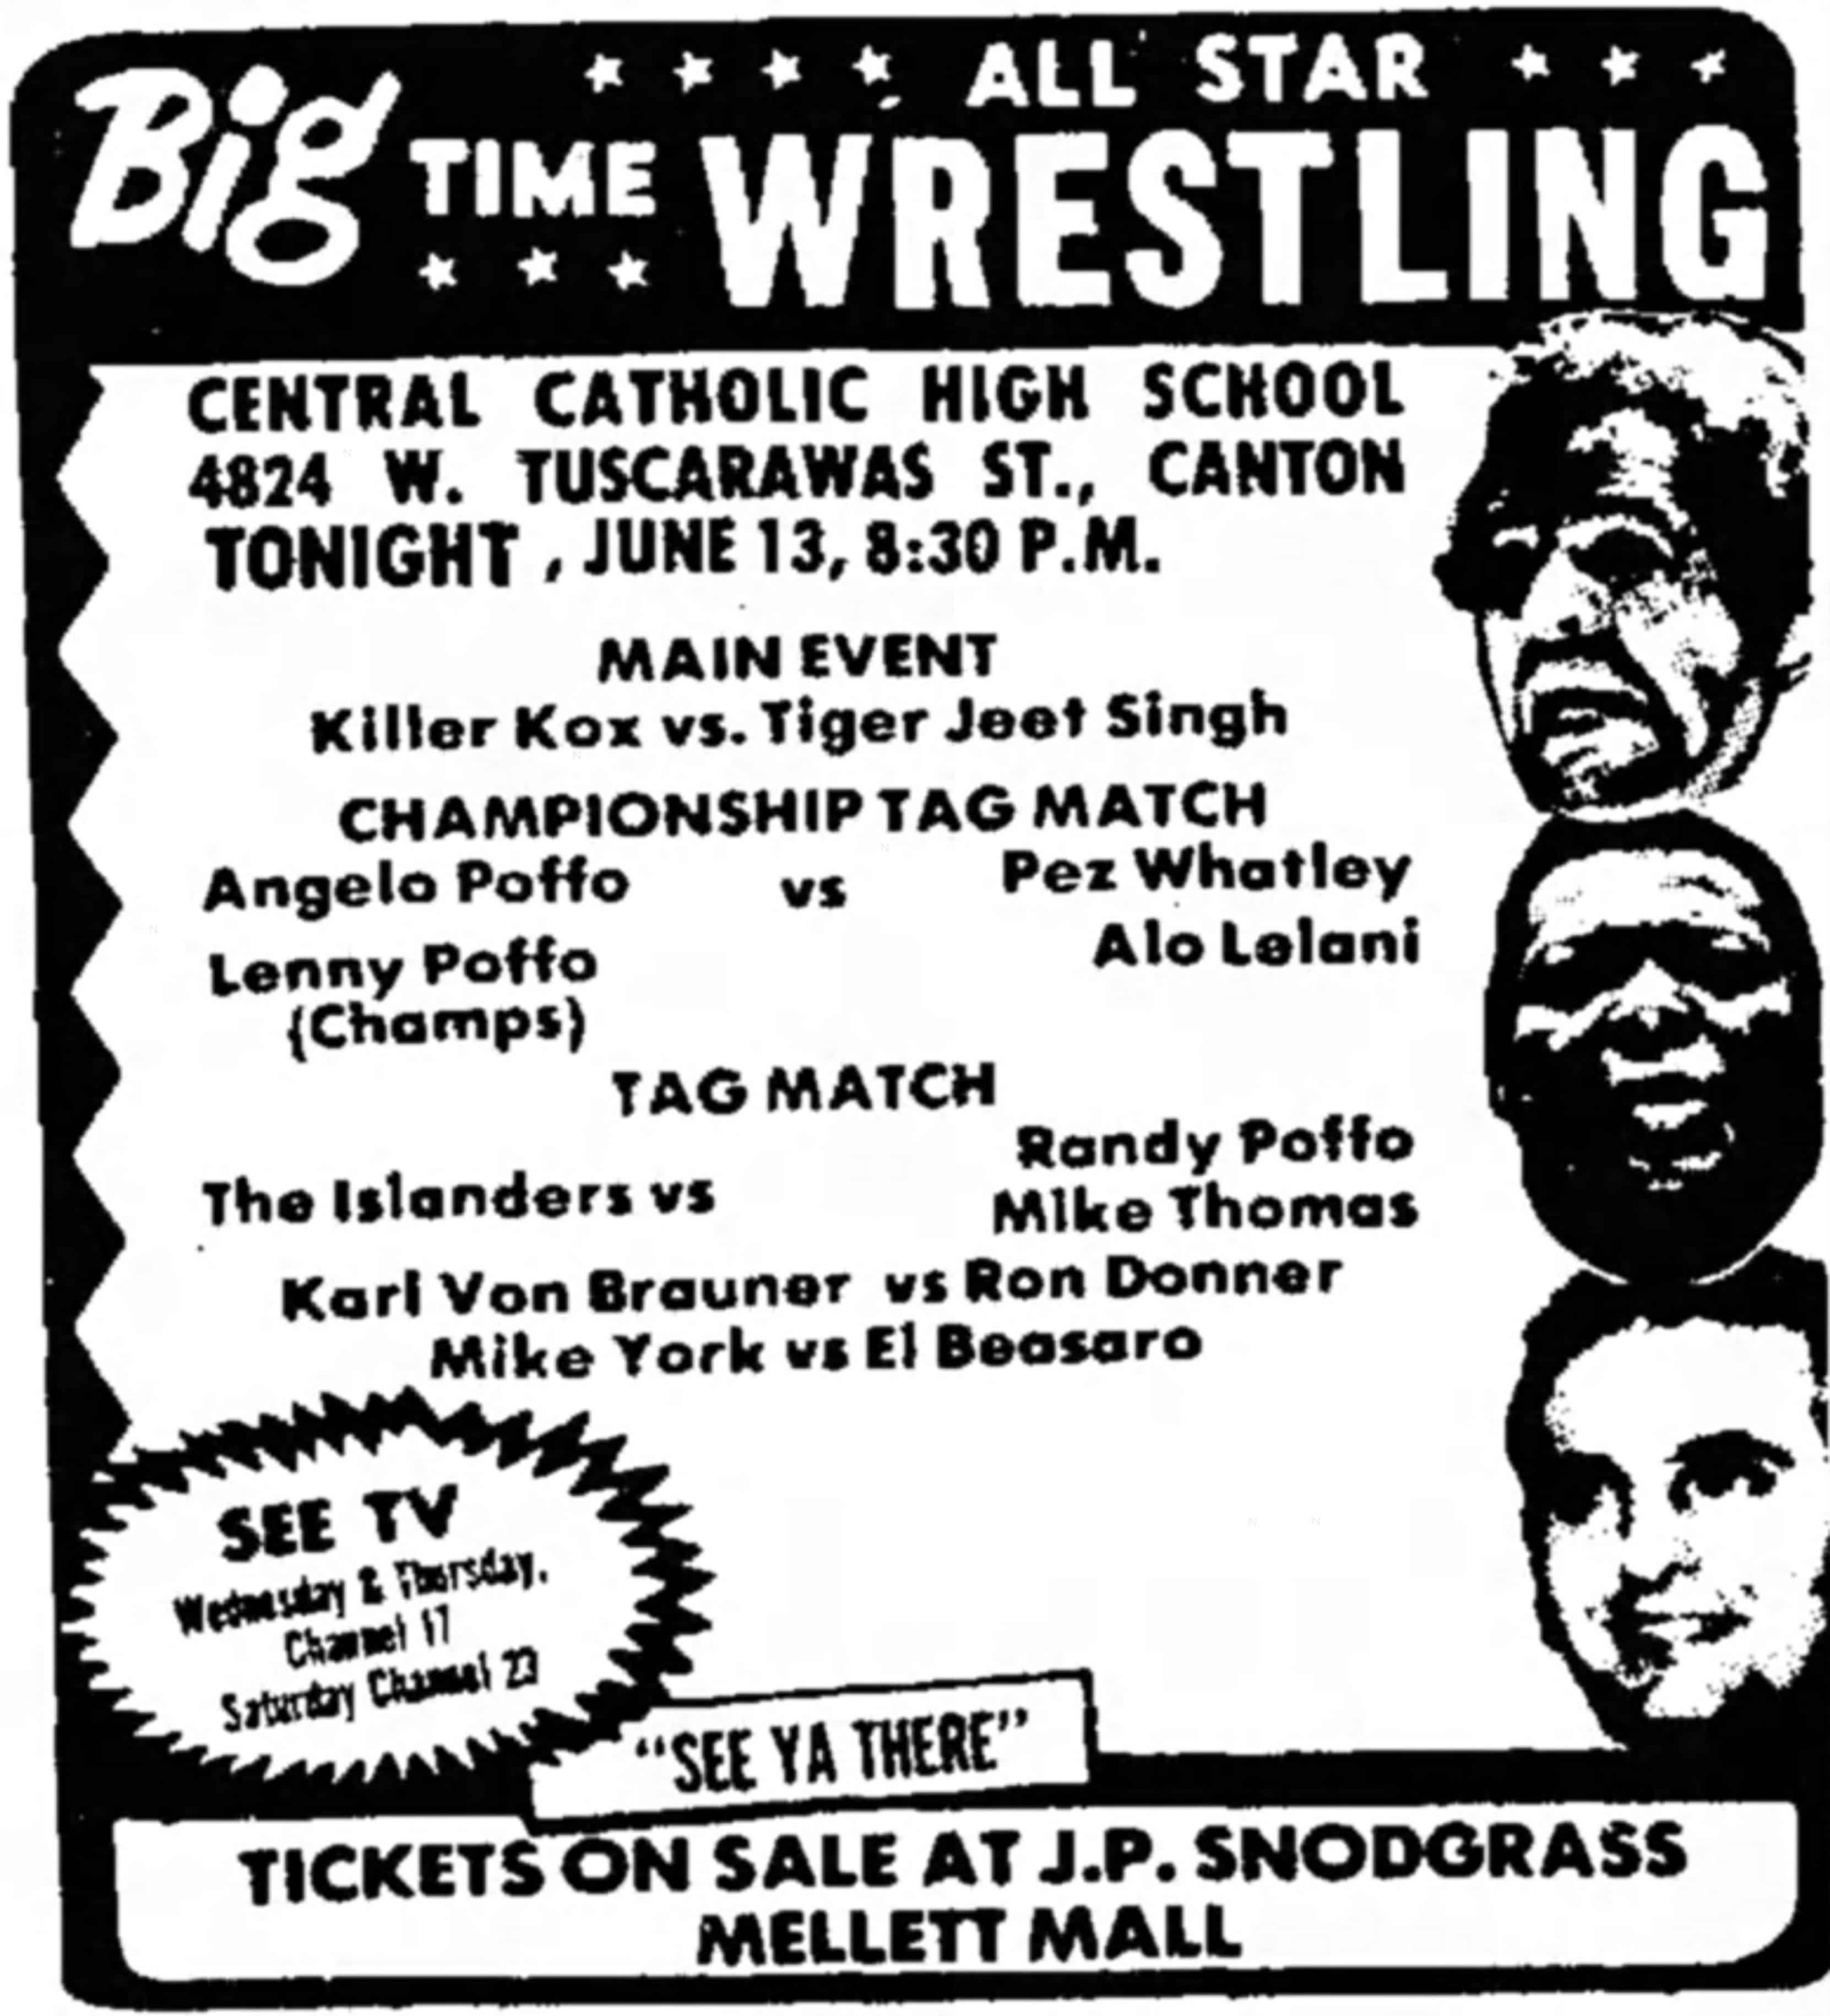 Wrestling advert featuring the Poffo family from the Friday, June 13, 1975 edition of The Evening Independent.